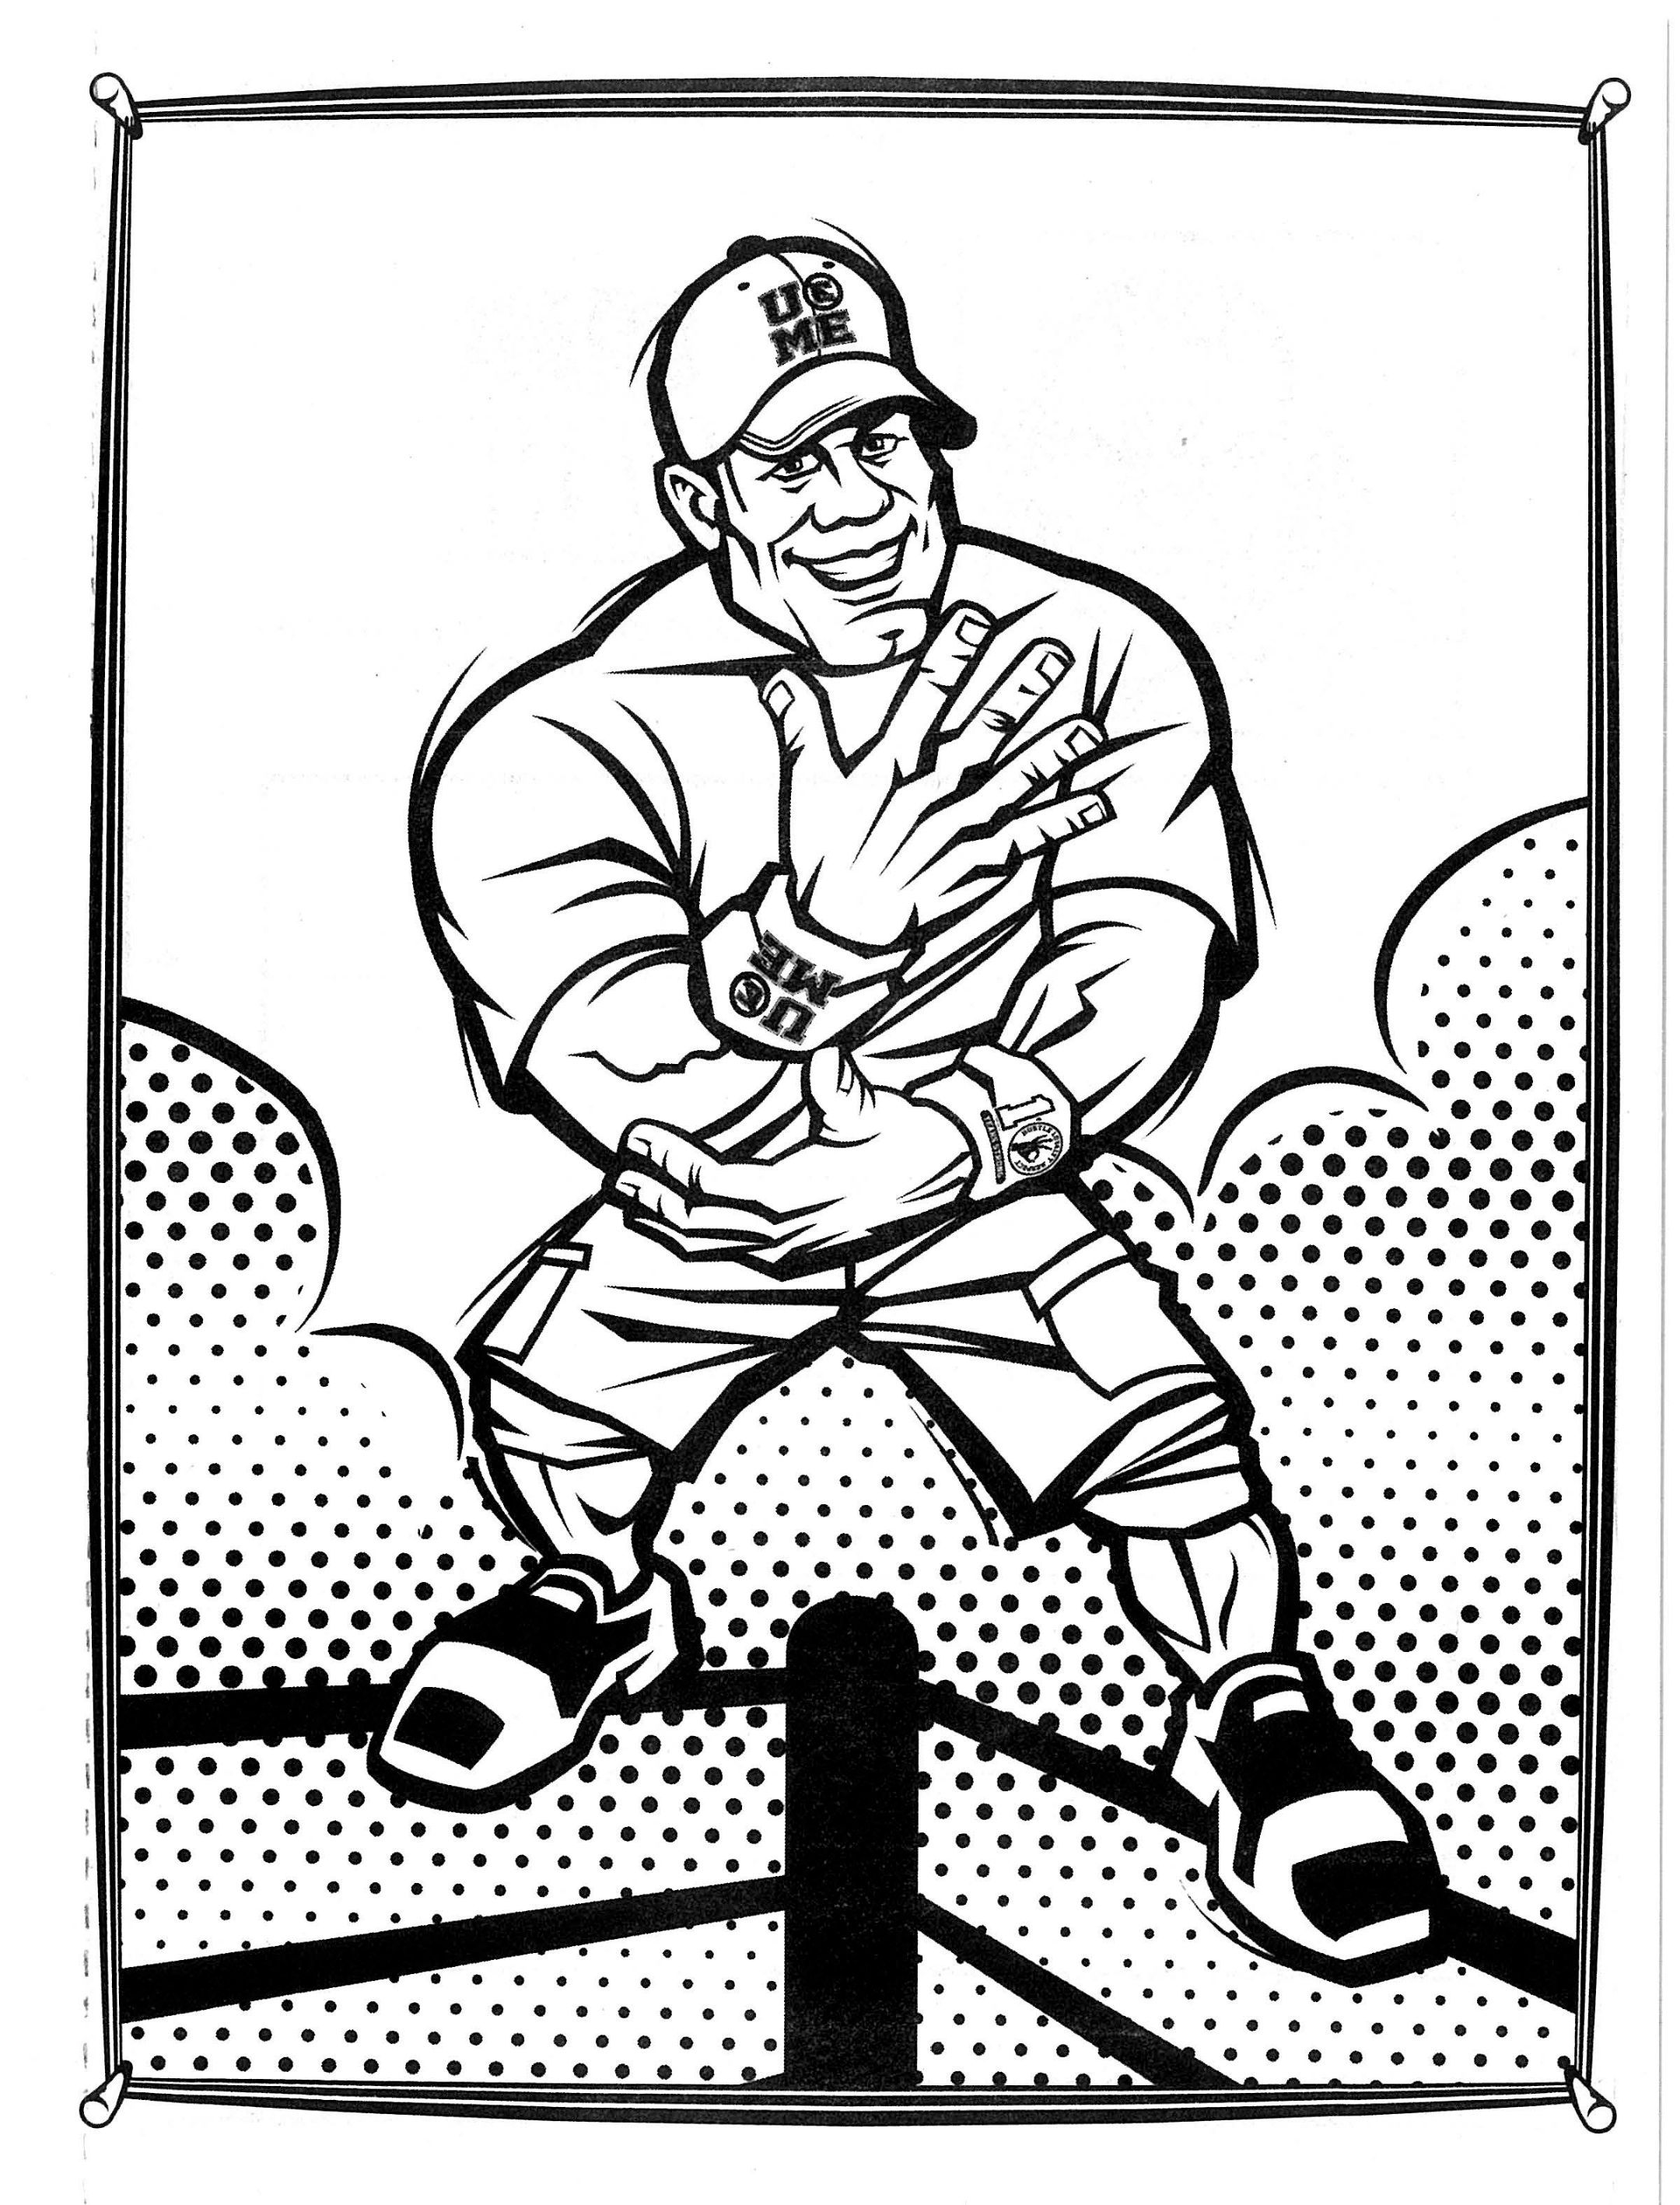 wwe colouring pictures get this printable wwe coloring pages 23911 wwe colouring pictures